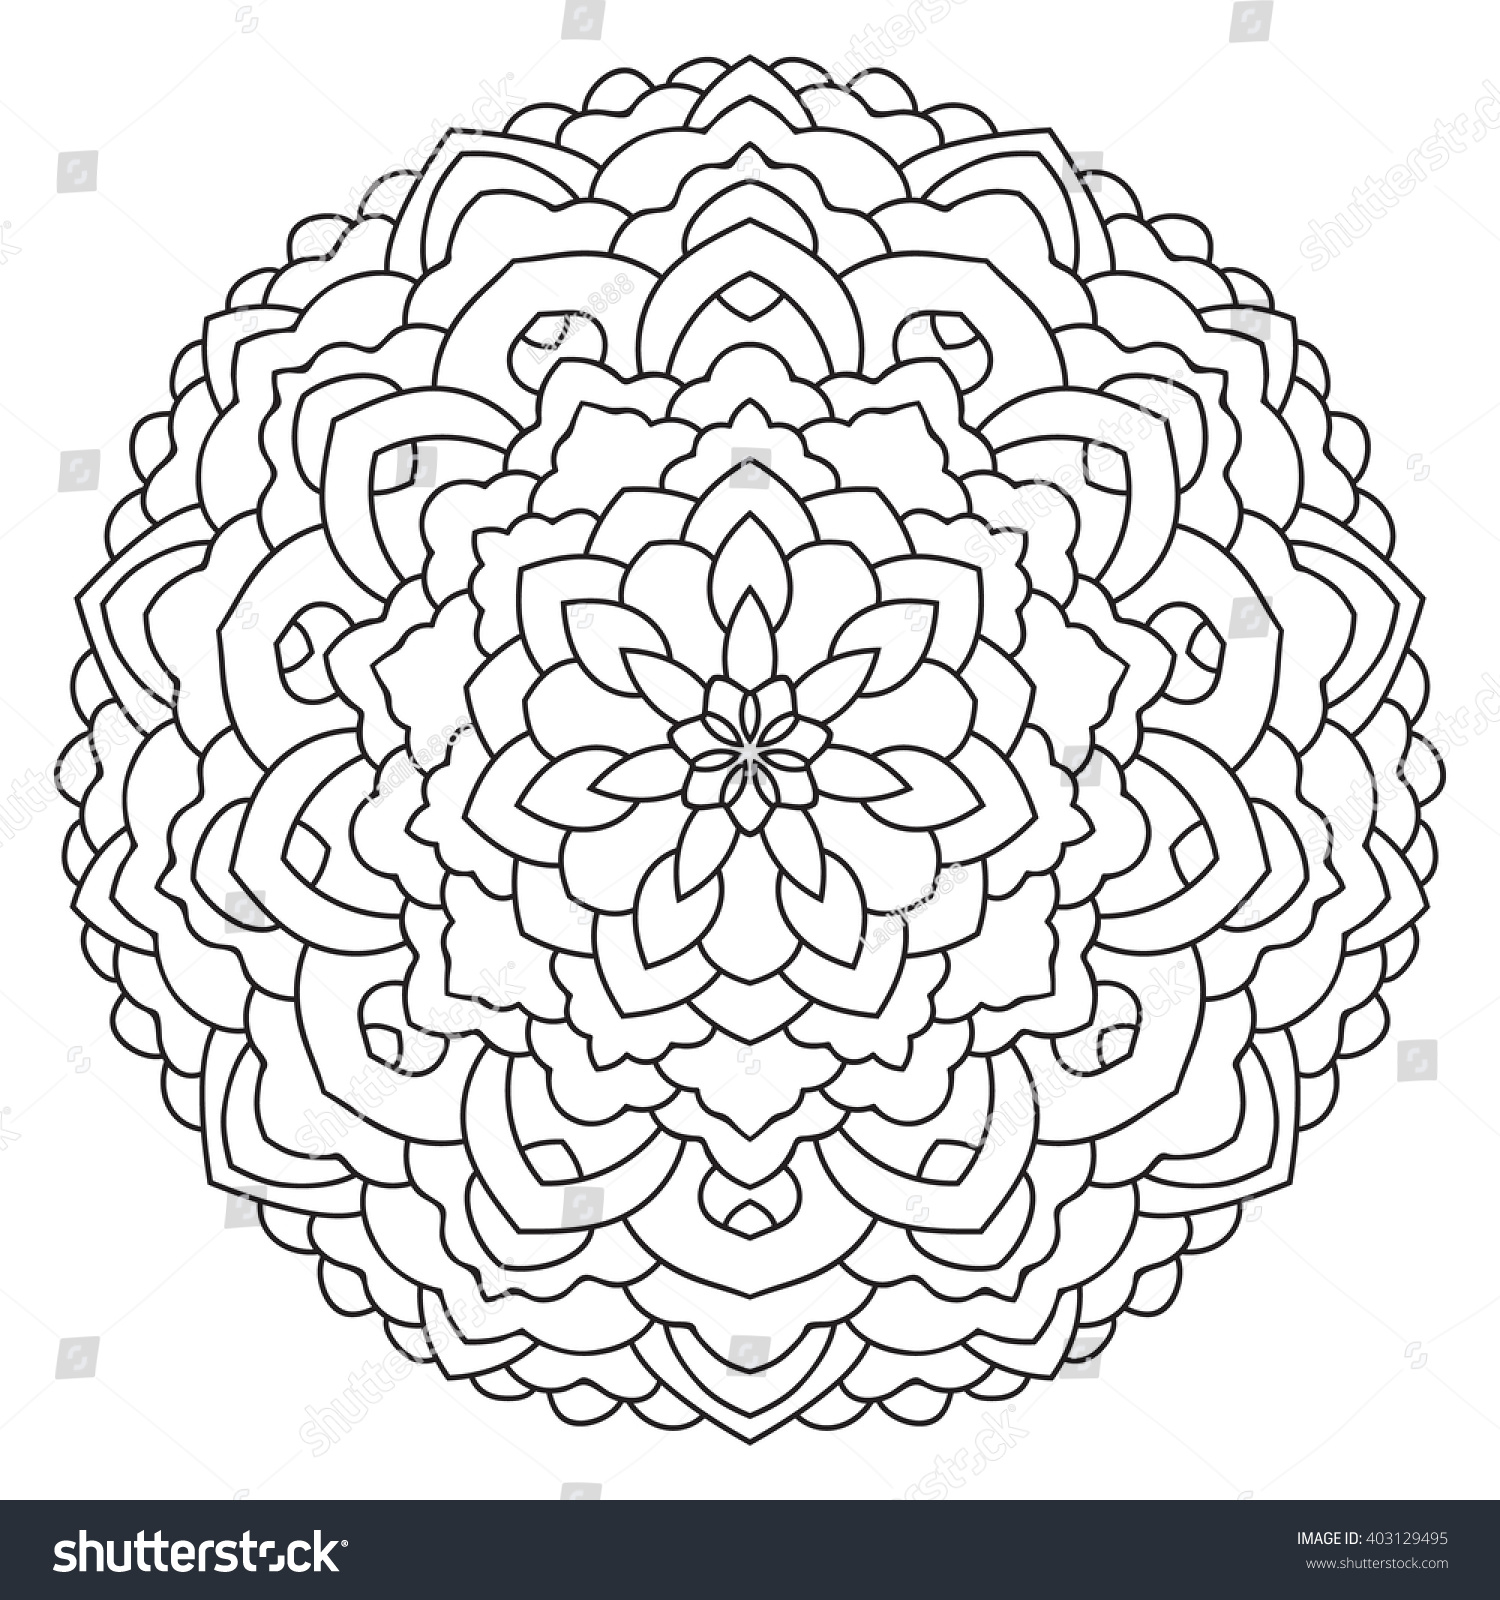 oriental pattern coloring page for adults turkish islamic preview save to a lightbox